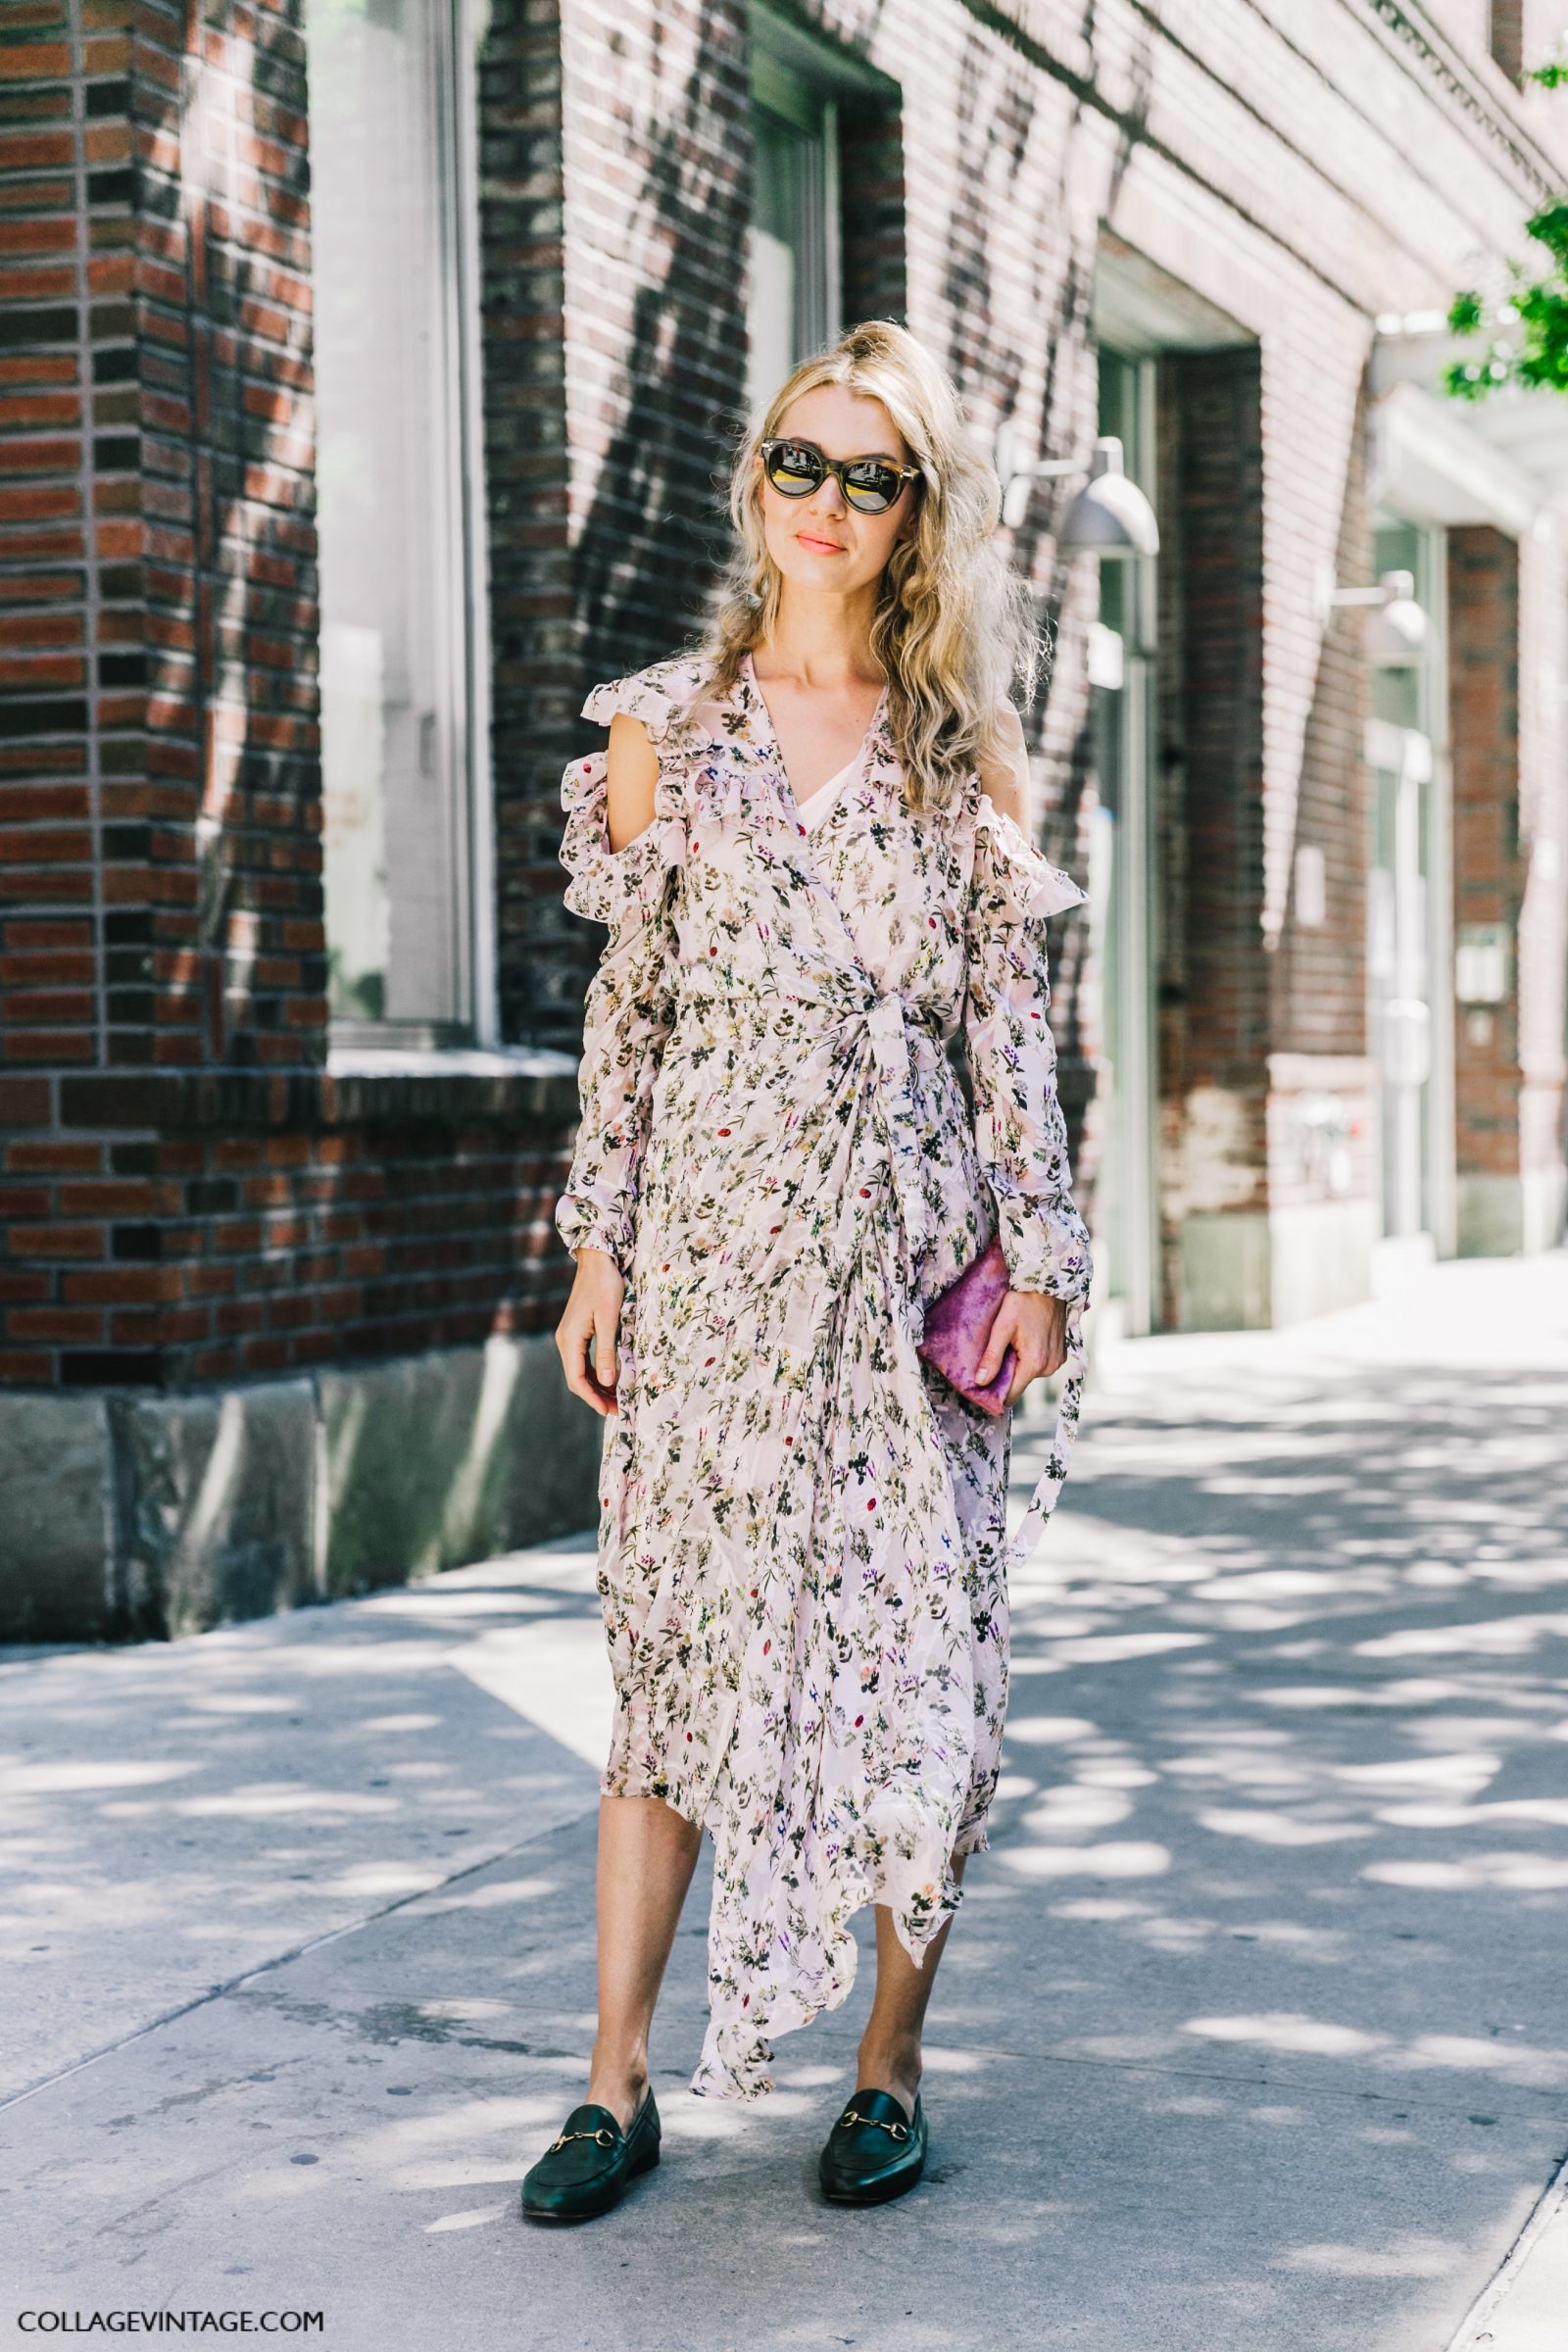 nyfw-new_york_fashion_week_ss17-street_style-outfits-collage_vintage-vintage-mansur_gavriel-rodarte-coach-6